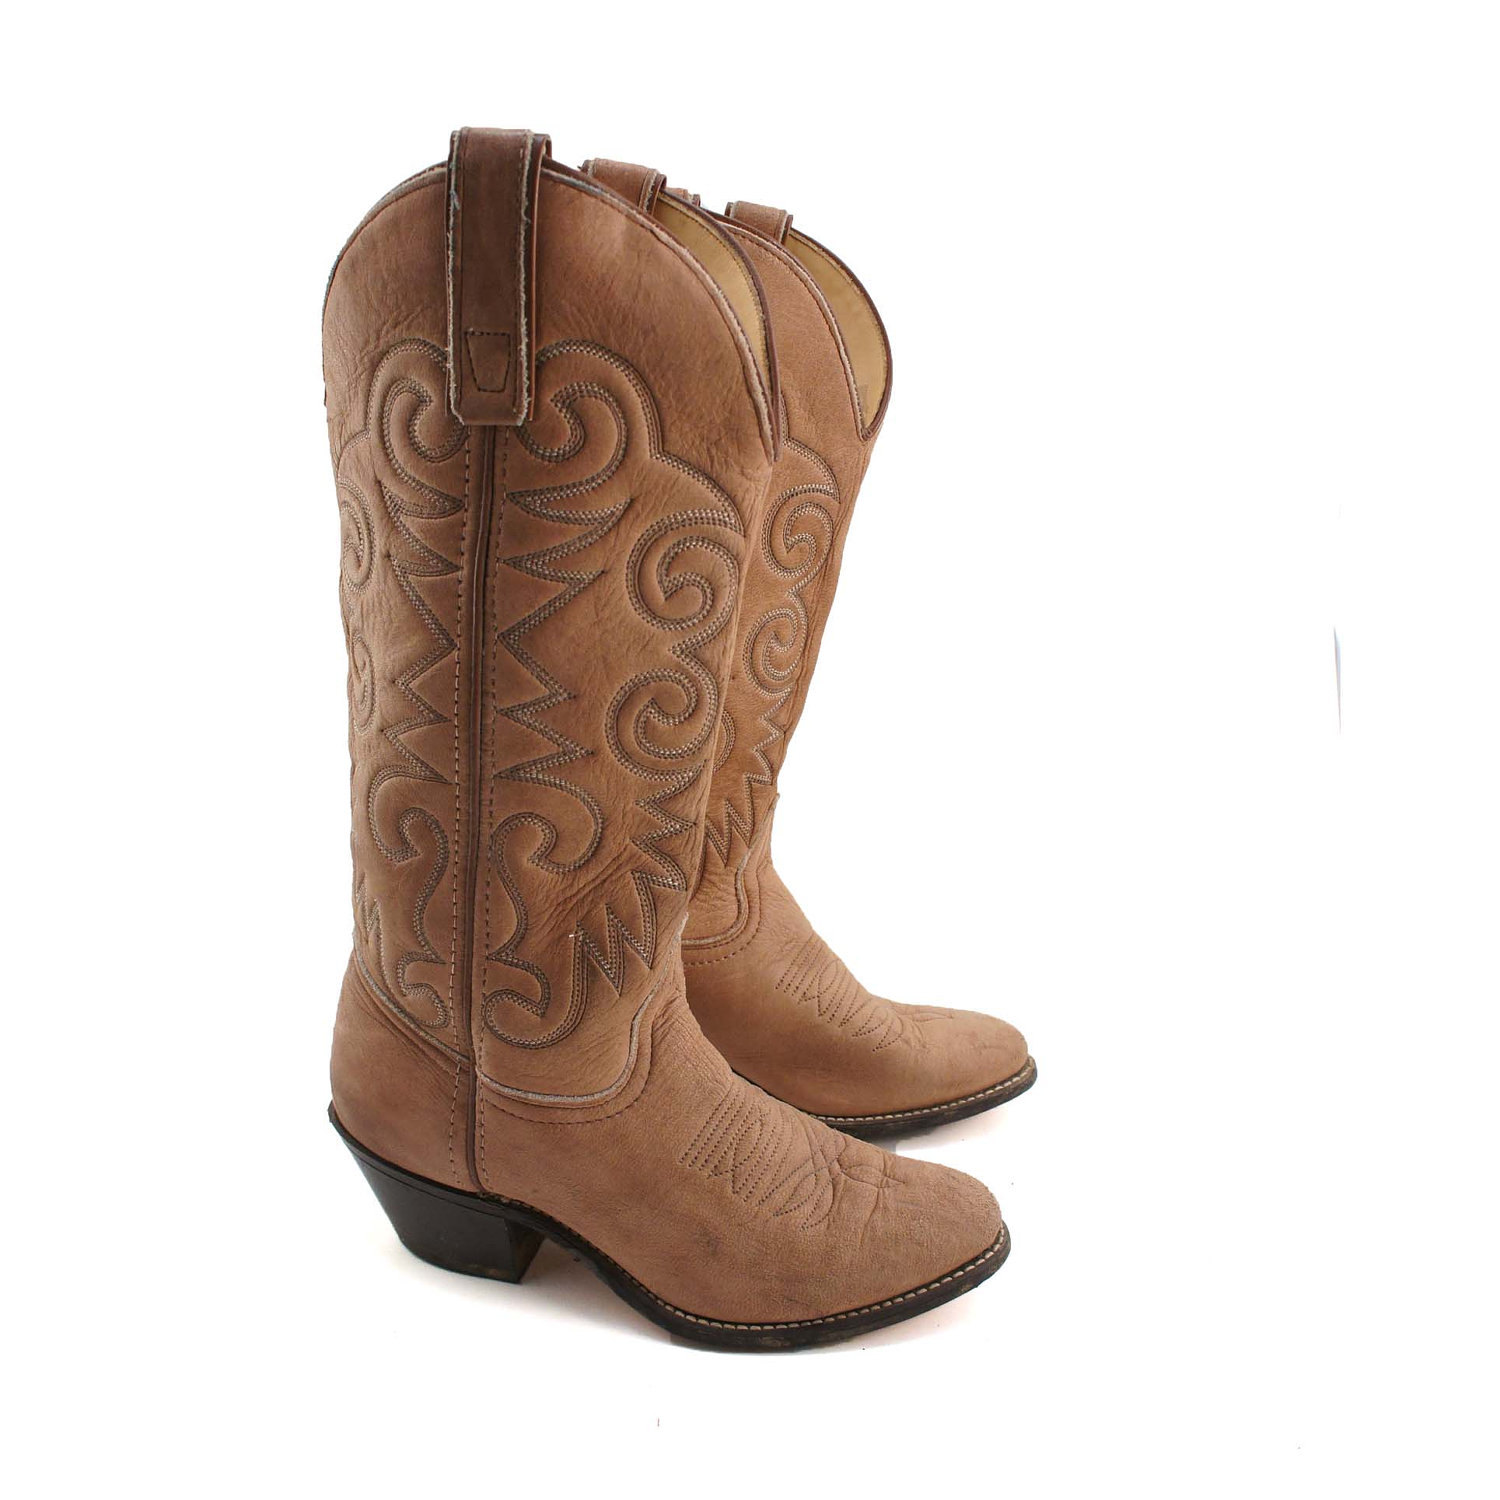 Brown Cowboy Boots For Women NcHYBpOL